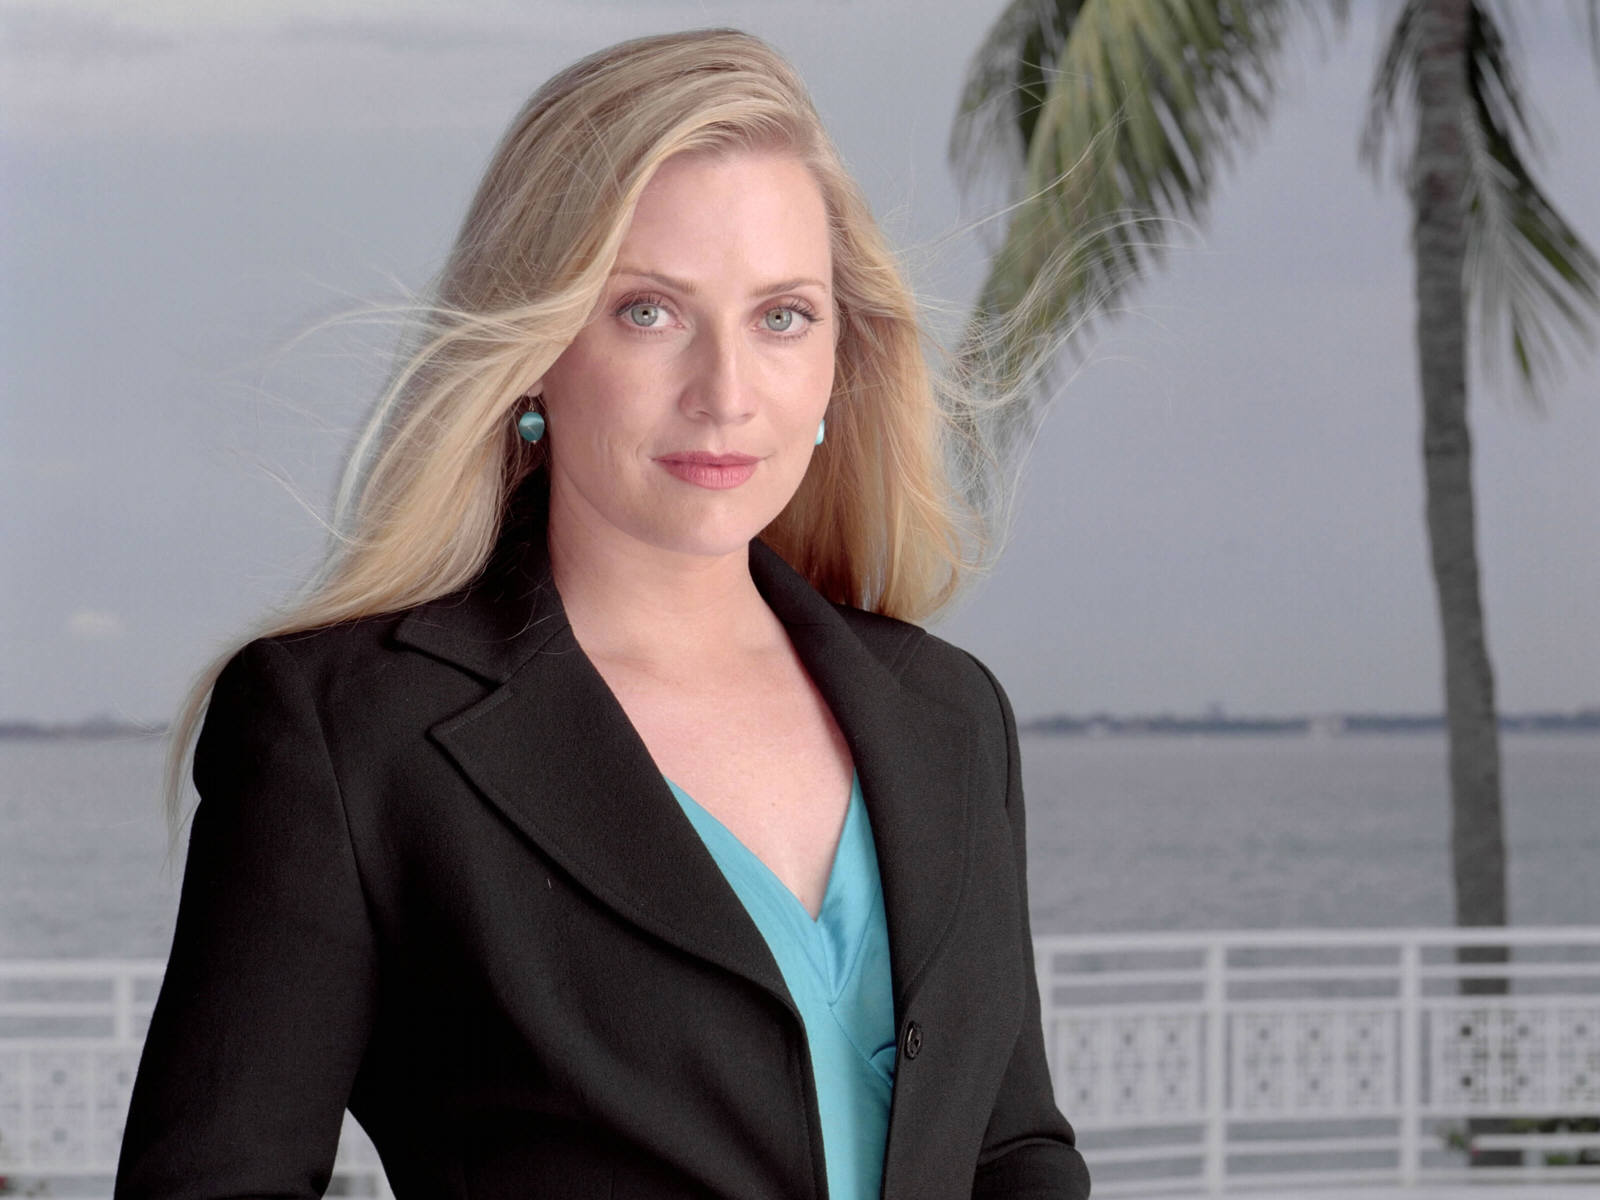 emily procter computer background 1191